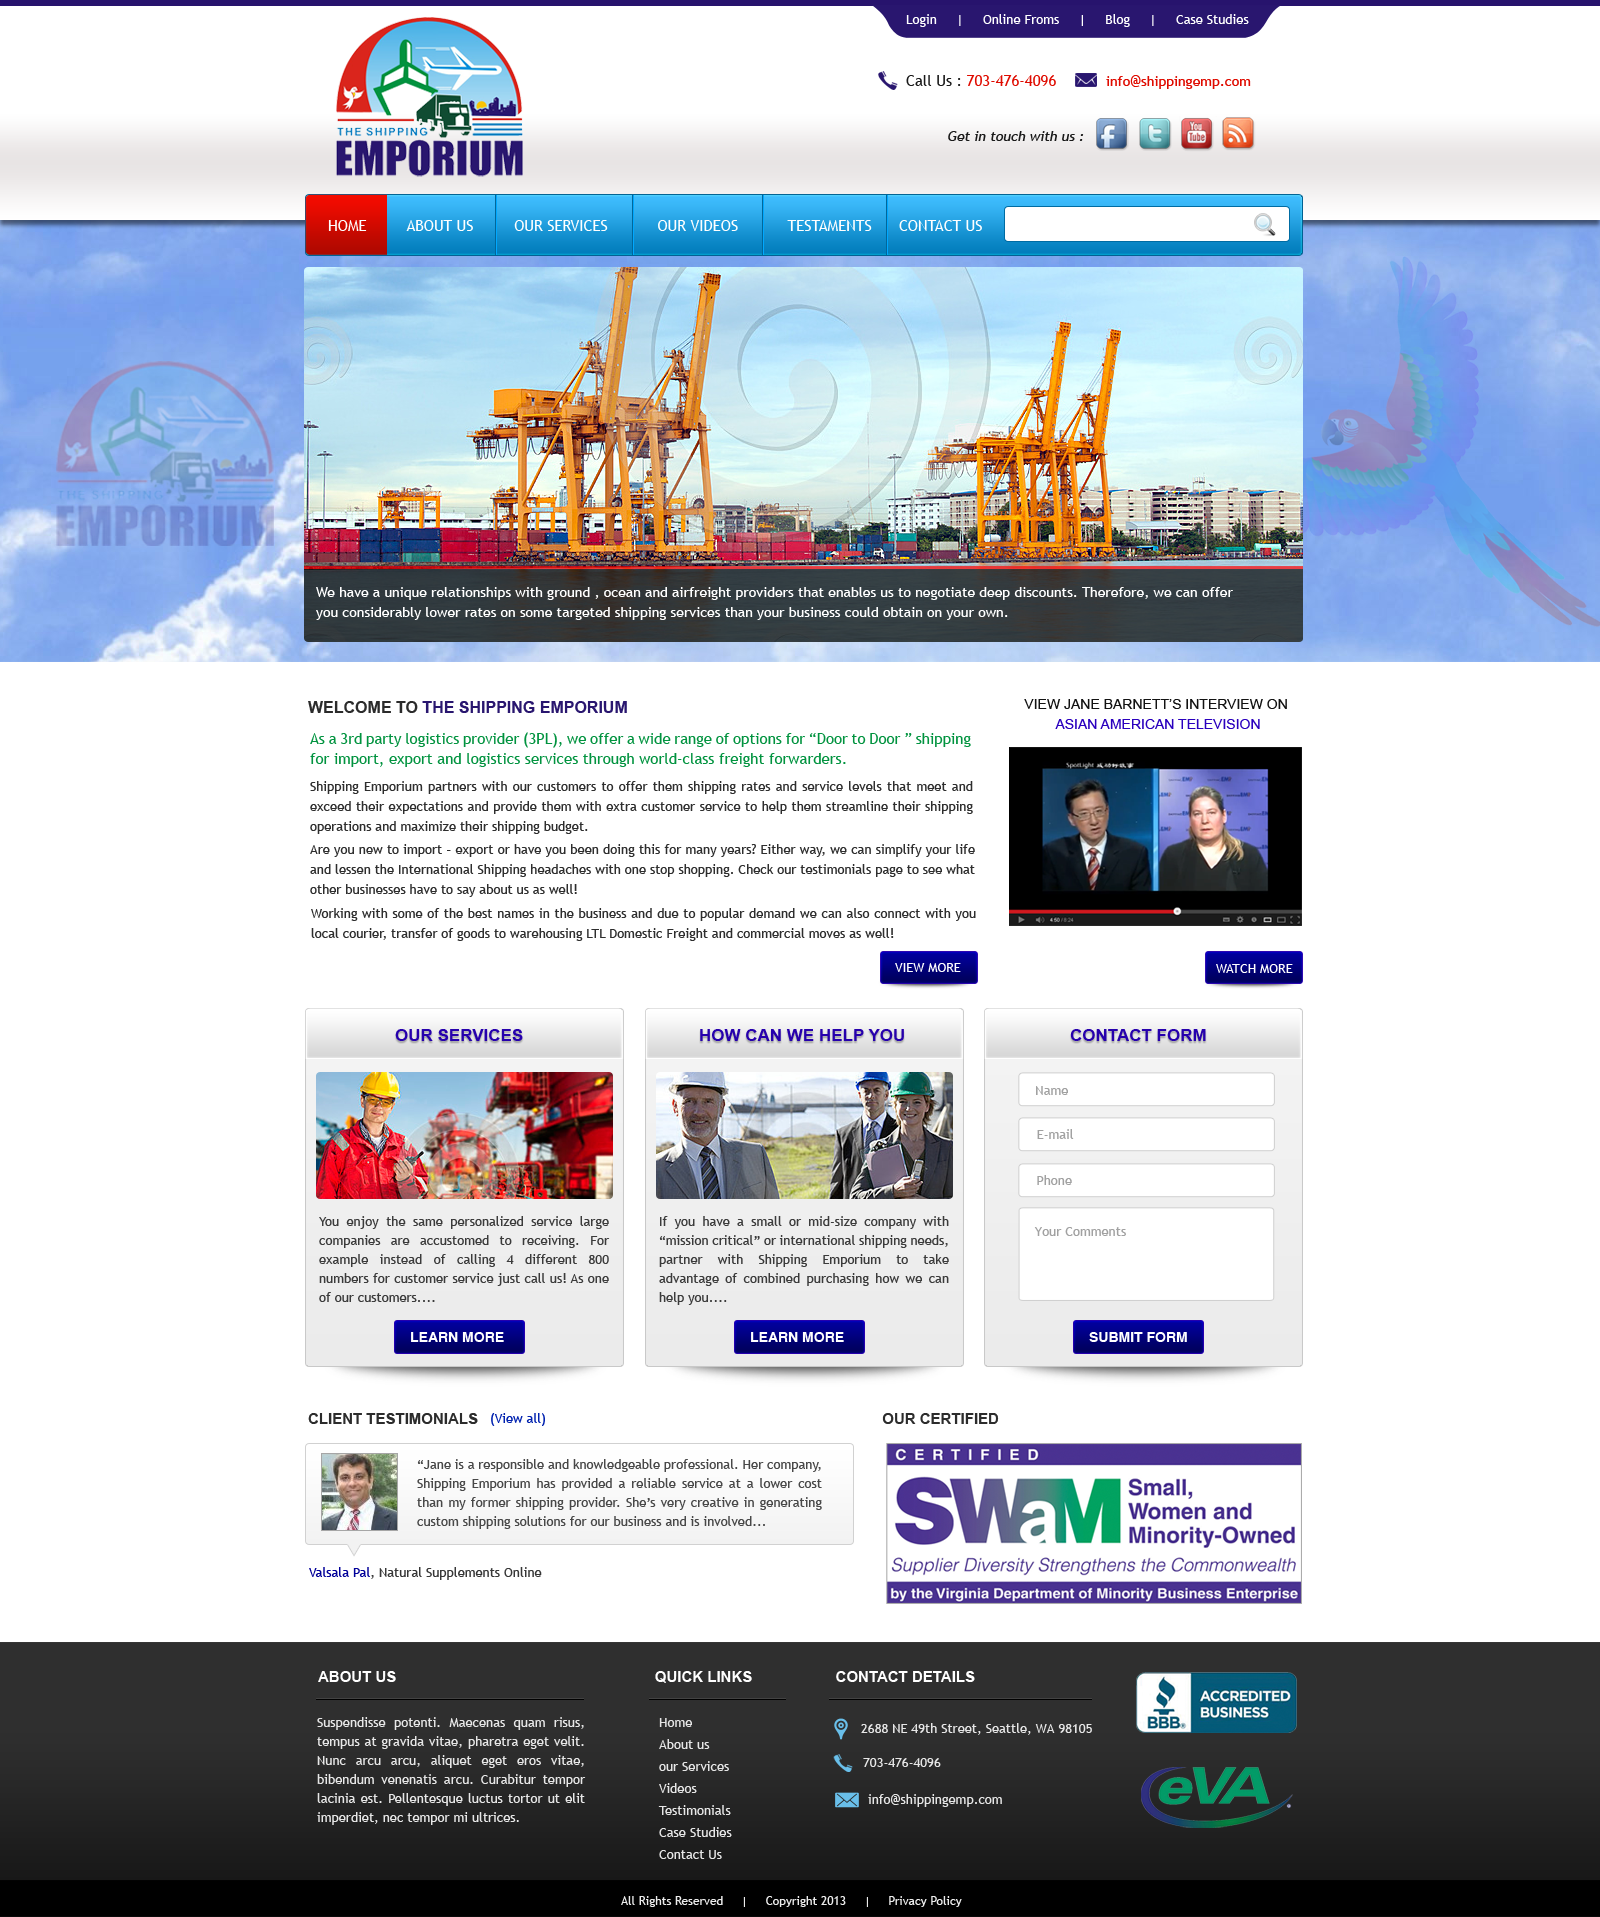 Web Page Design by Vishwa Km - Entry No. 45 in the Web Page Design Contest Artistic Web Page Design for The Shipping Emporium Website.